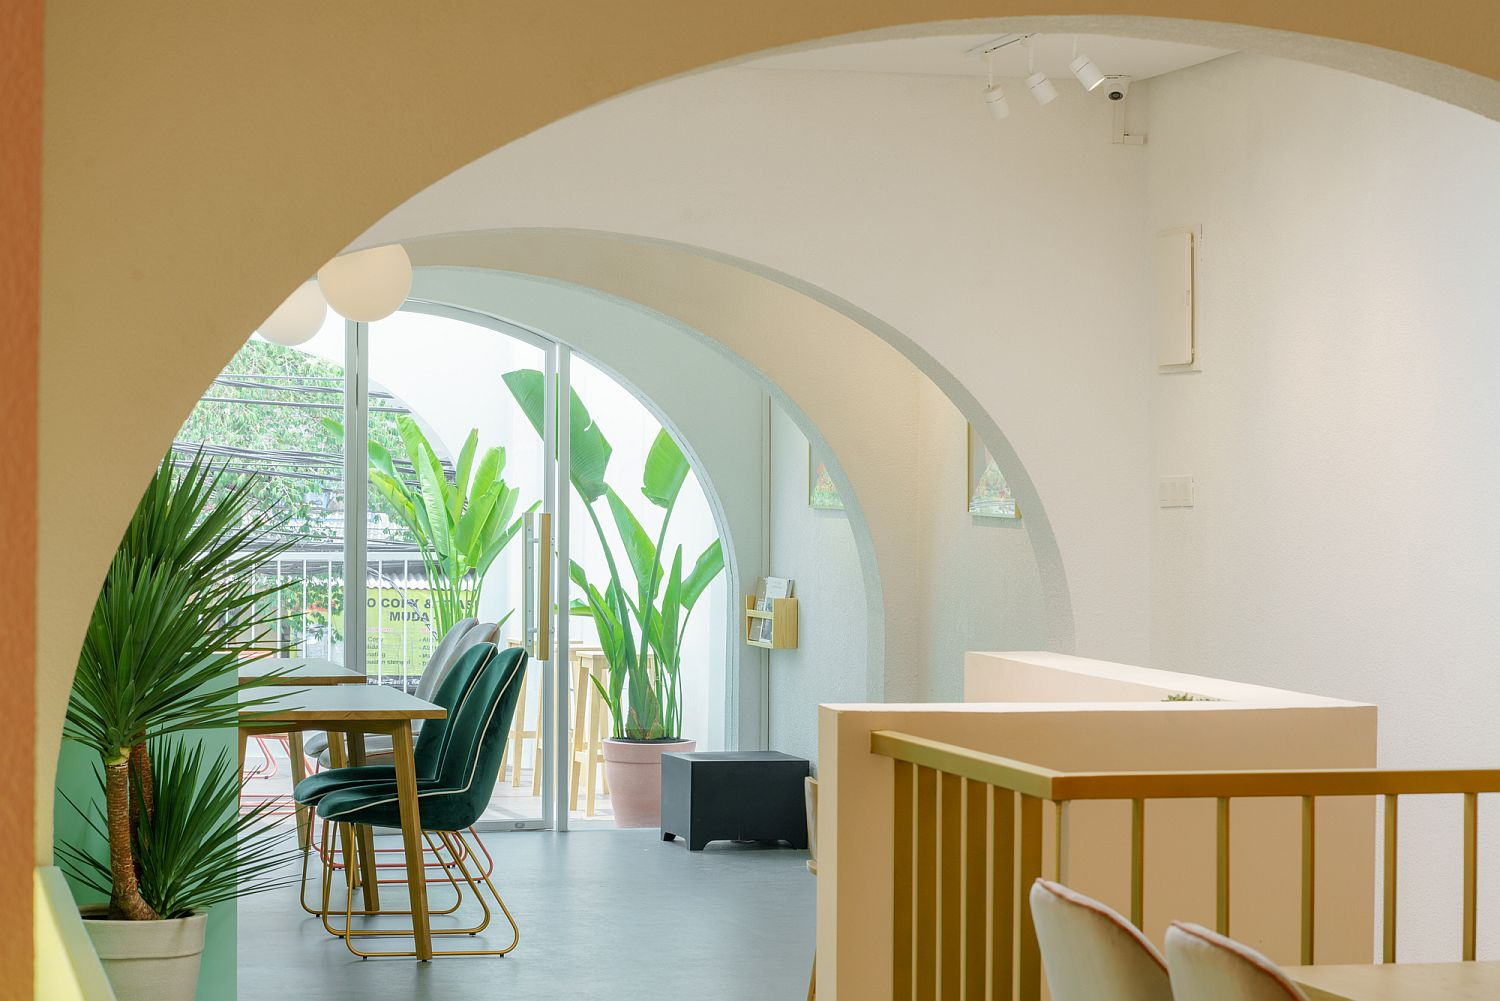 Series of arches add to the spatial appeal of the cafe